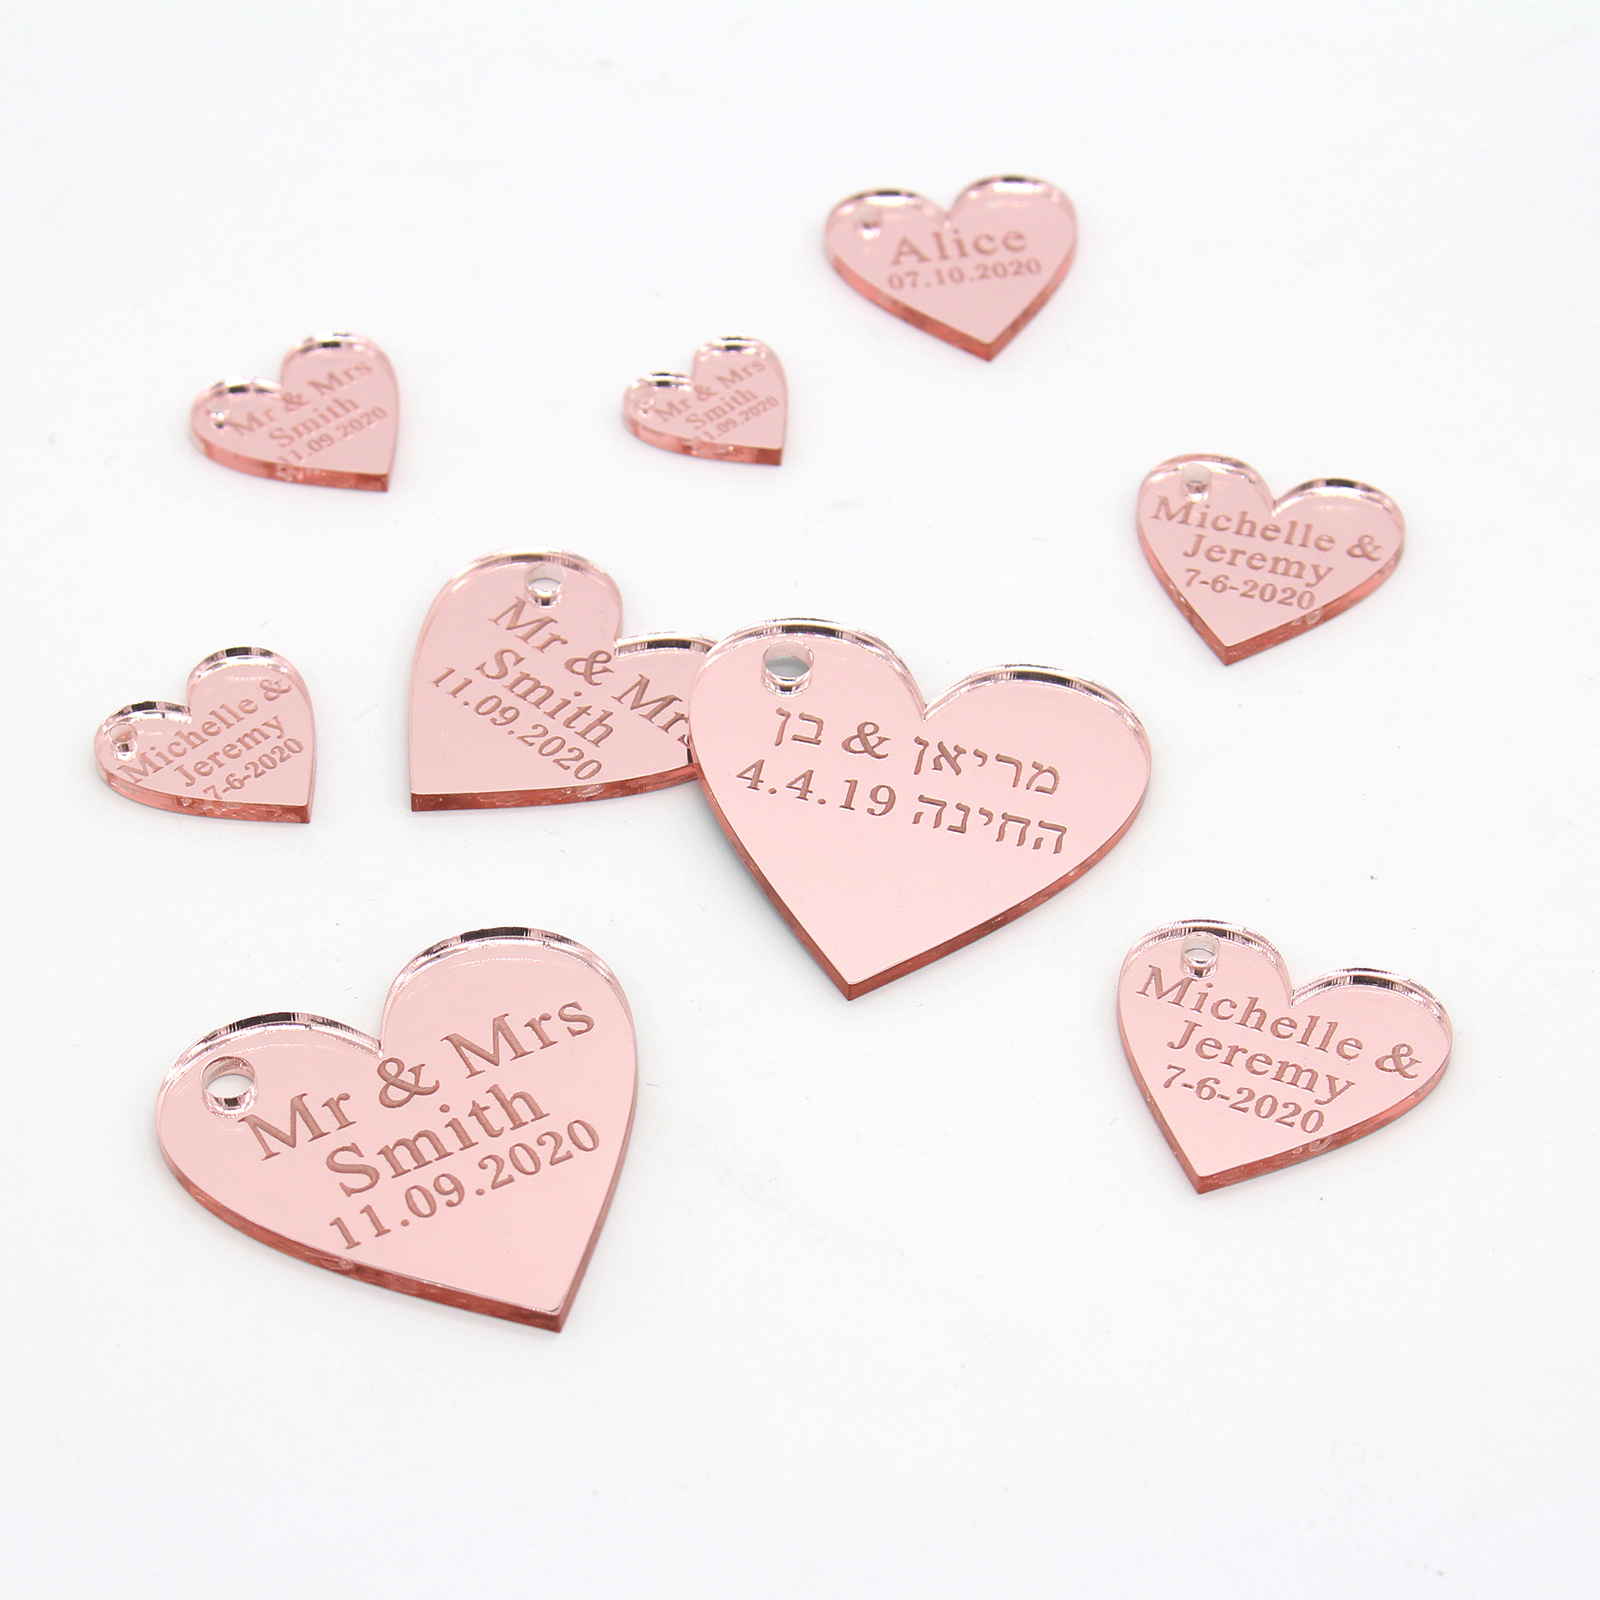 100 Personalized Engraved Love Hearts Rose Gold / Gold / Silver Mirror / Wood Tags Wedding Party Table Centerpieces Decor Favors